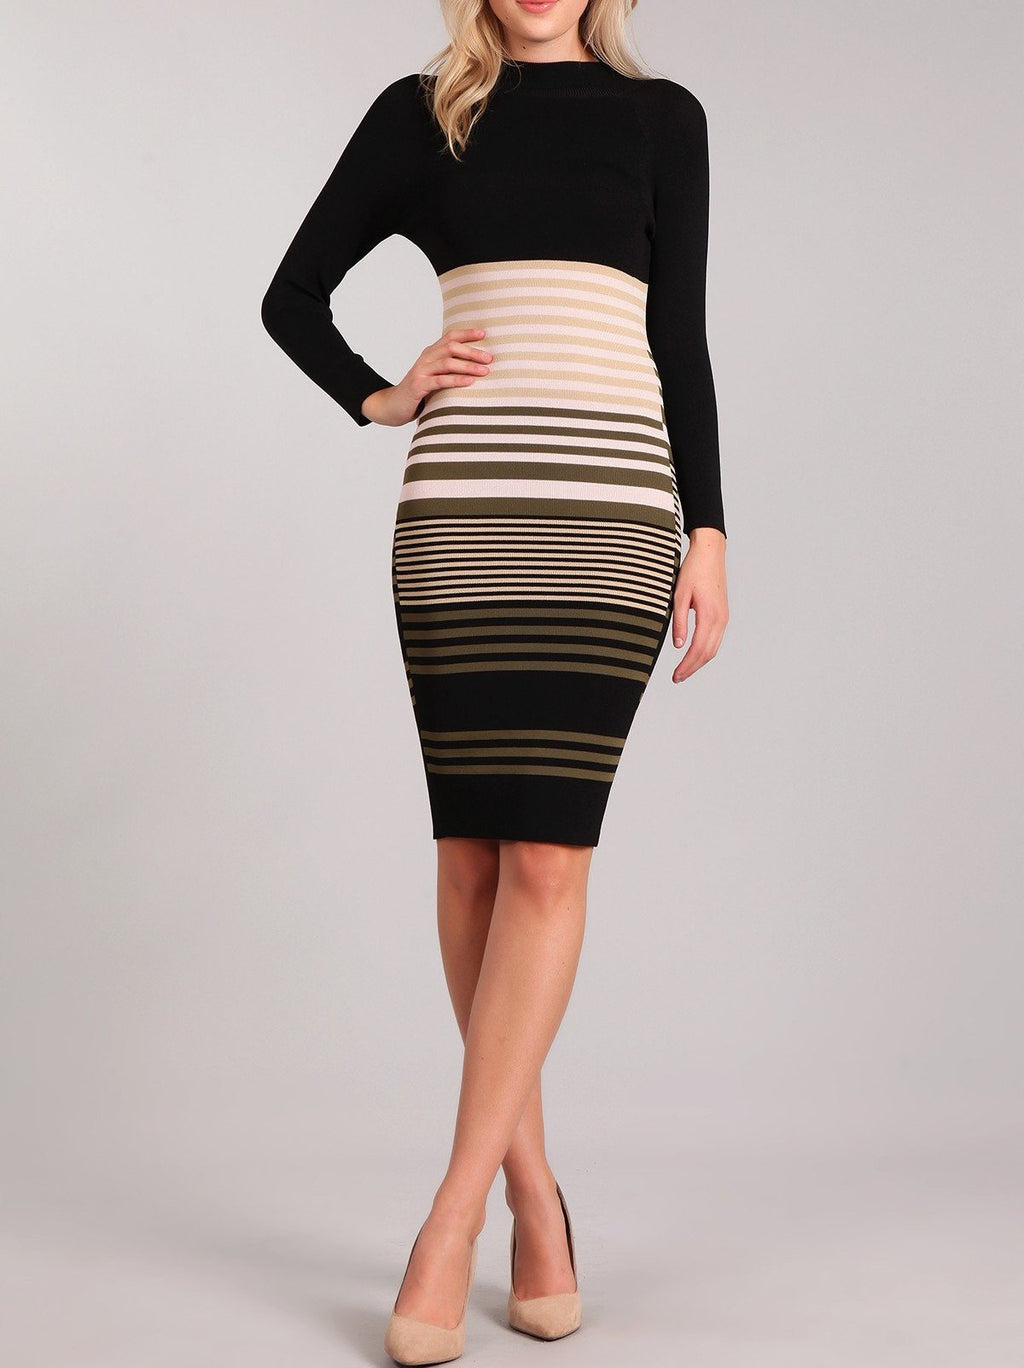 Bria Bella & Co - Chic Stripes Sweater Dress